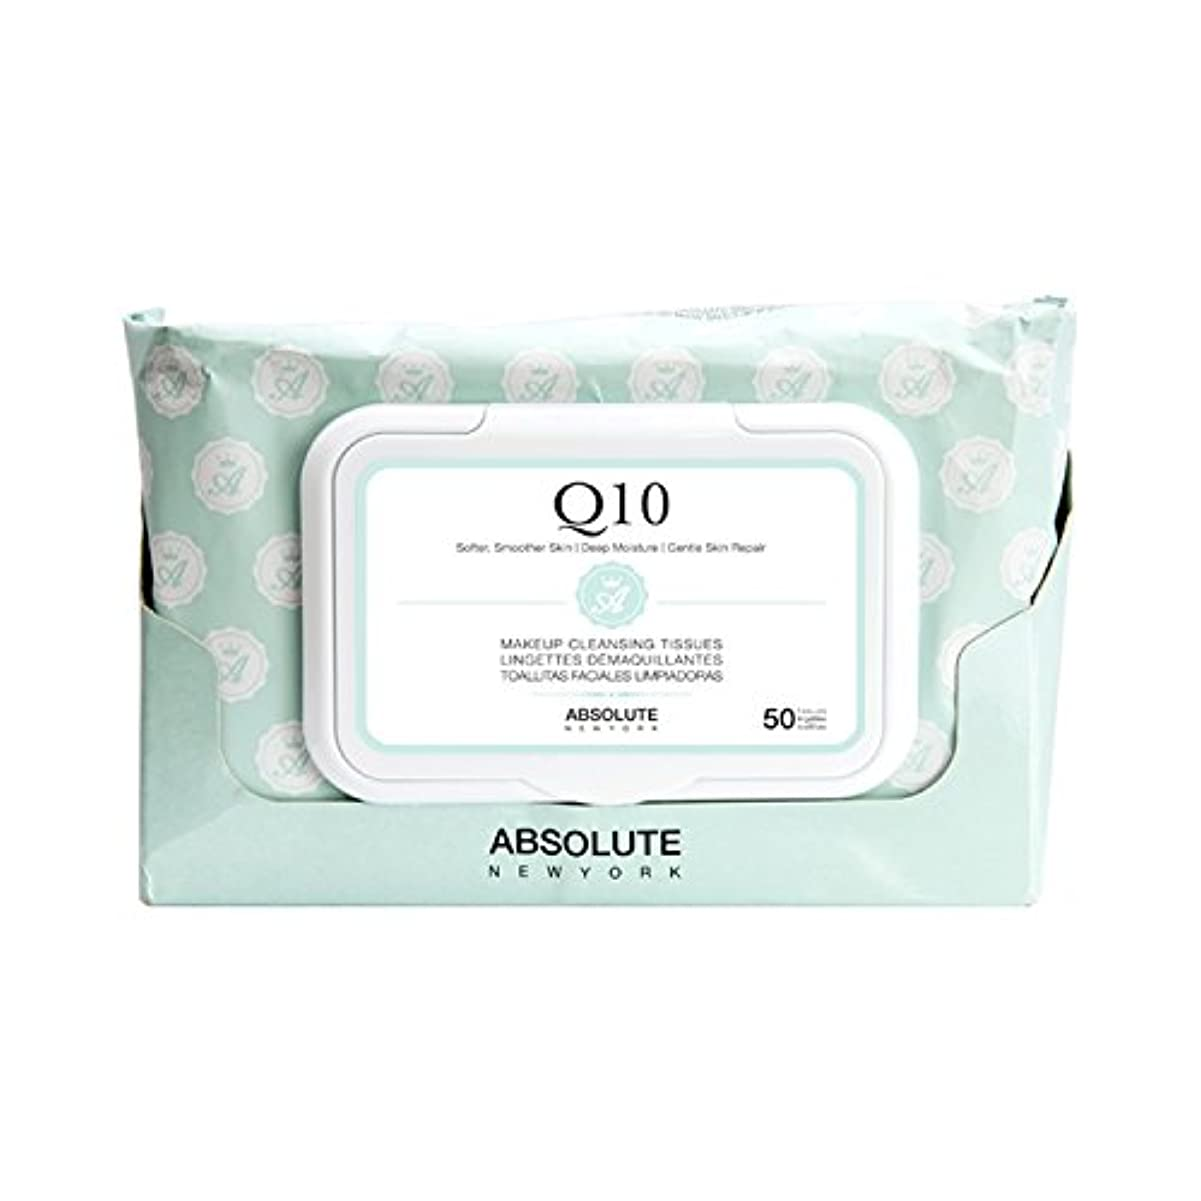 (6 Pack) ABSOLUTE Makeup Cleansing Tissue 50CT - Q10 (並行輸入品)